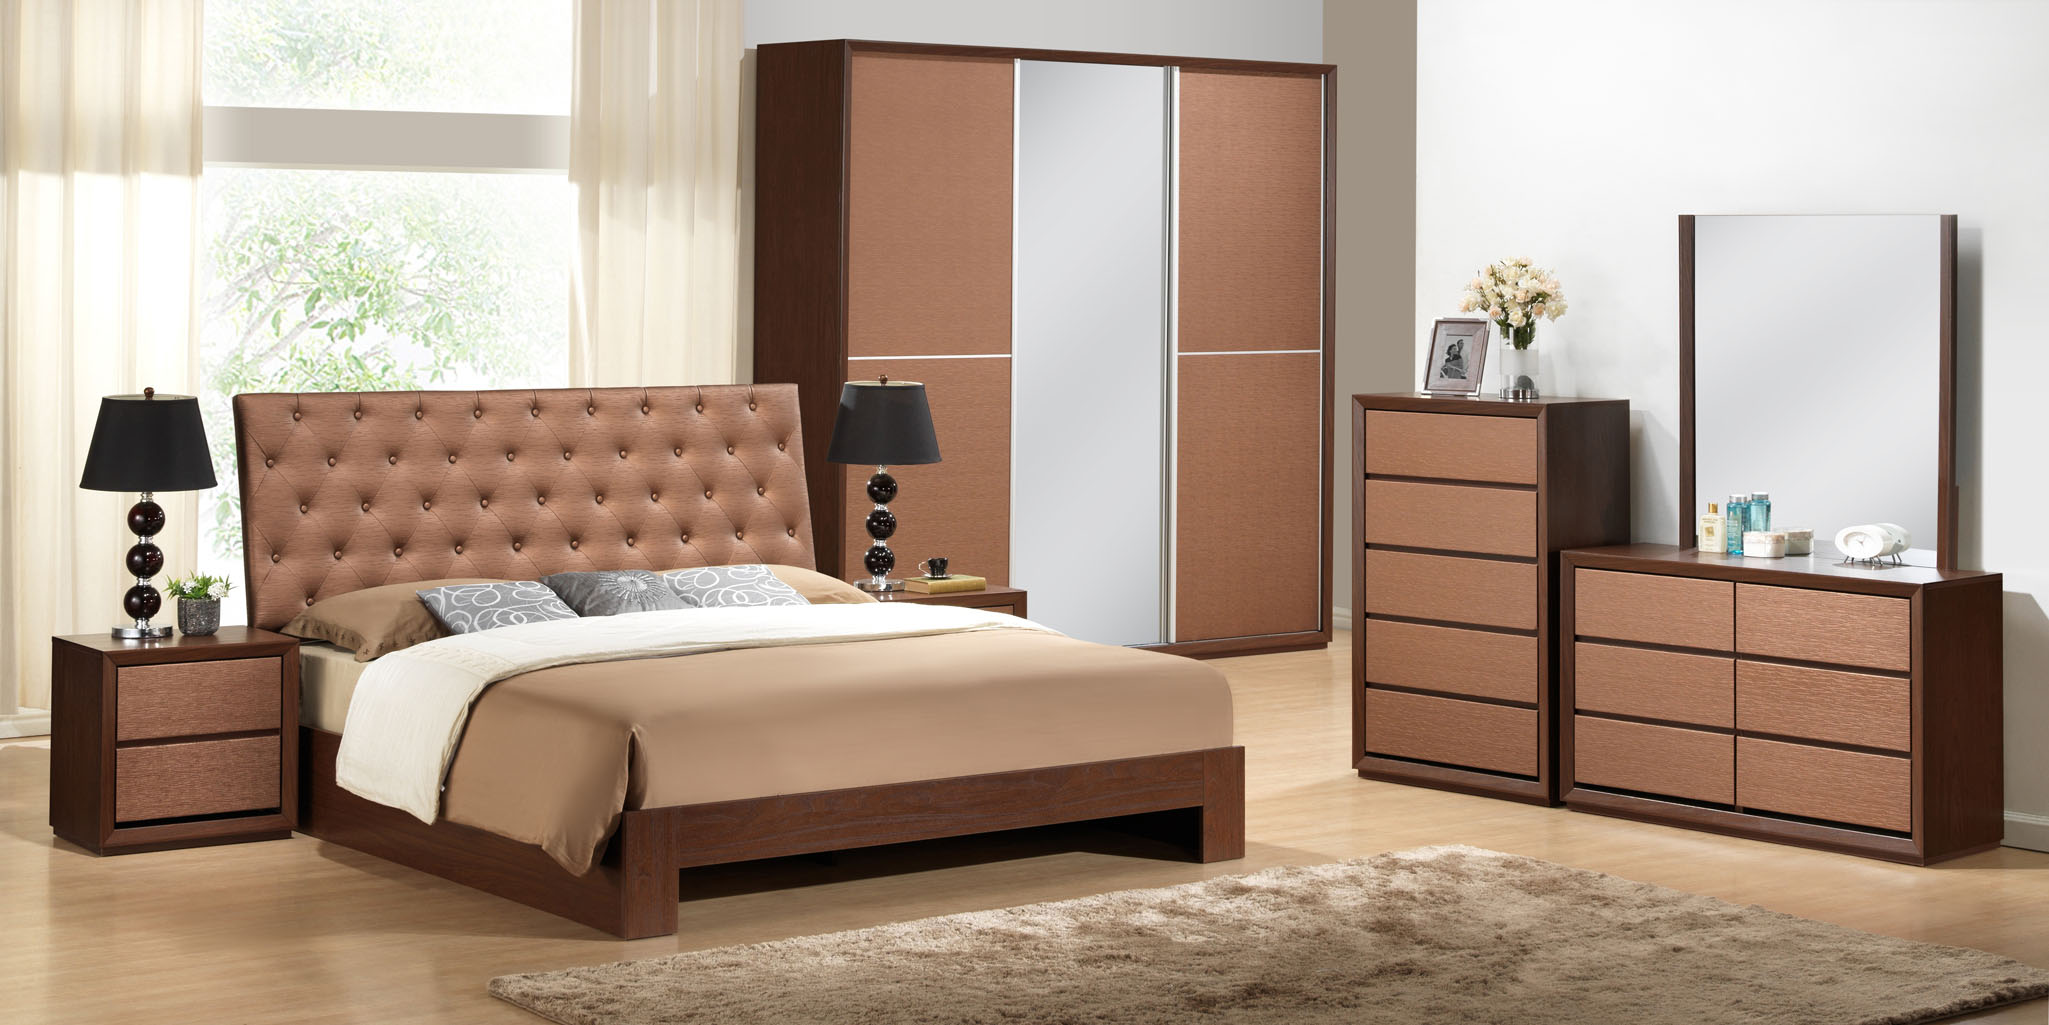 Quincy bedroom set fair production sdn bhd for Pictures of bed rooms